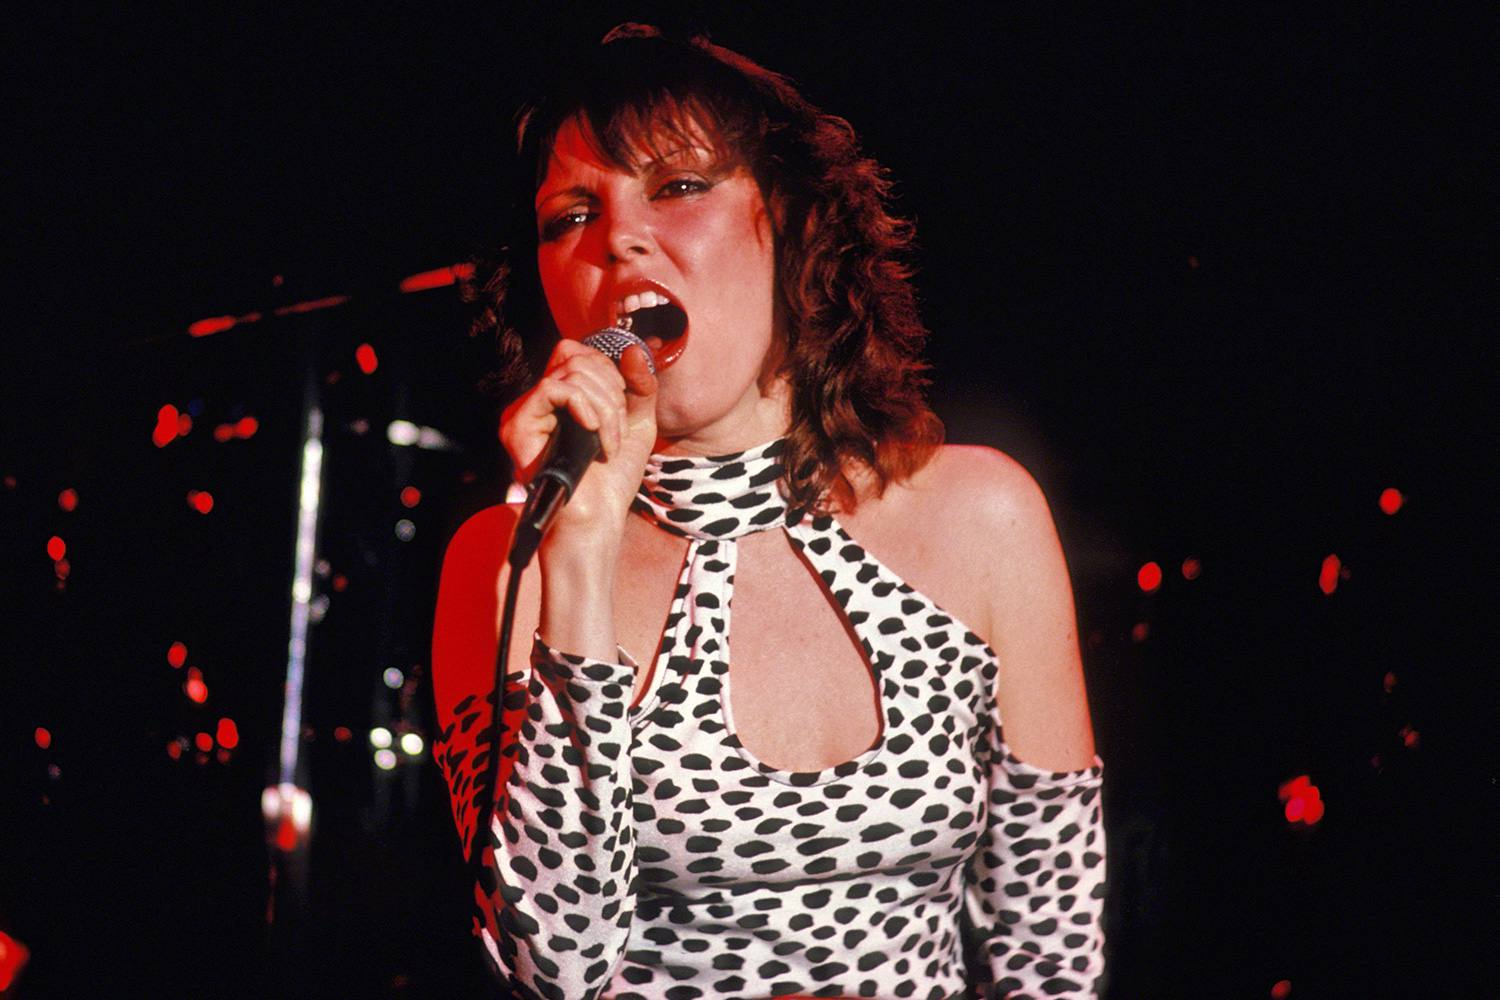 The Top Women Singers of '80s Rock